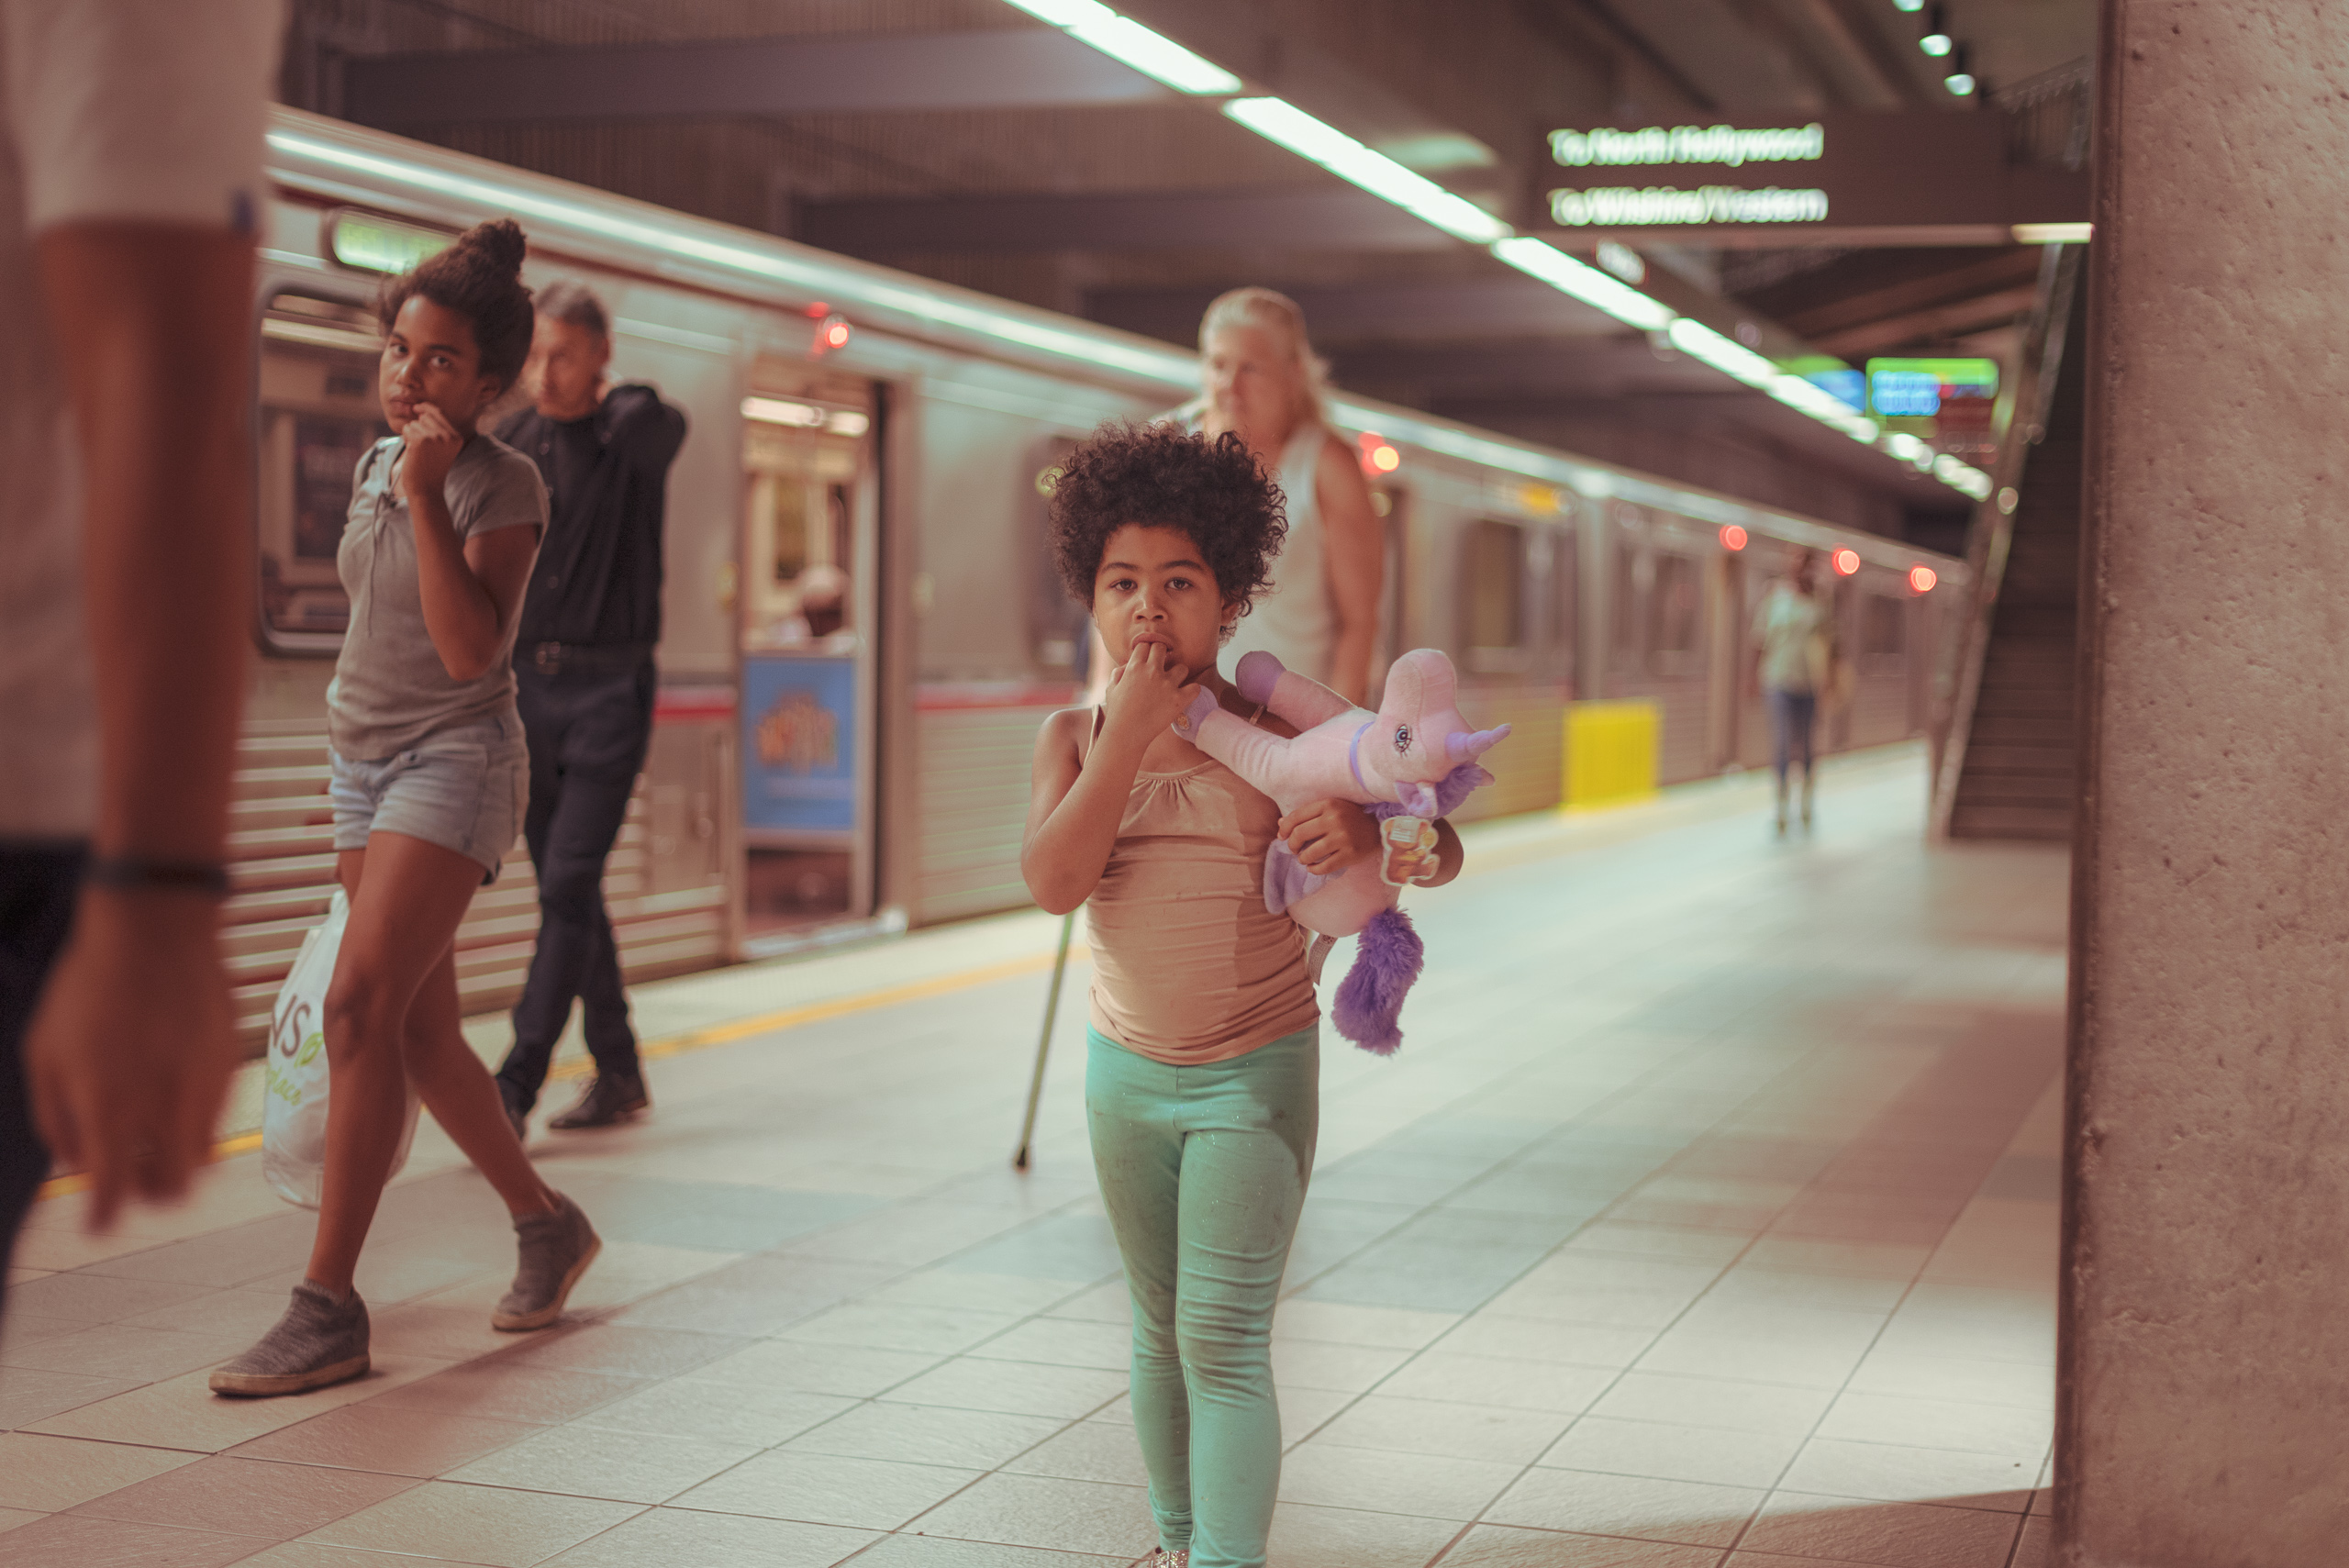 a young girl clutches a unicorn plush animal as she walks through the Red Line terminal at Union Station at night